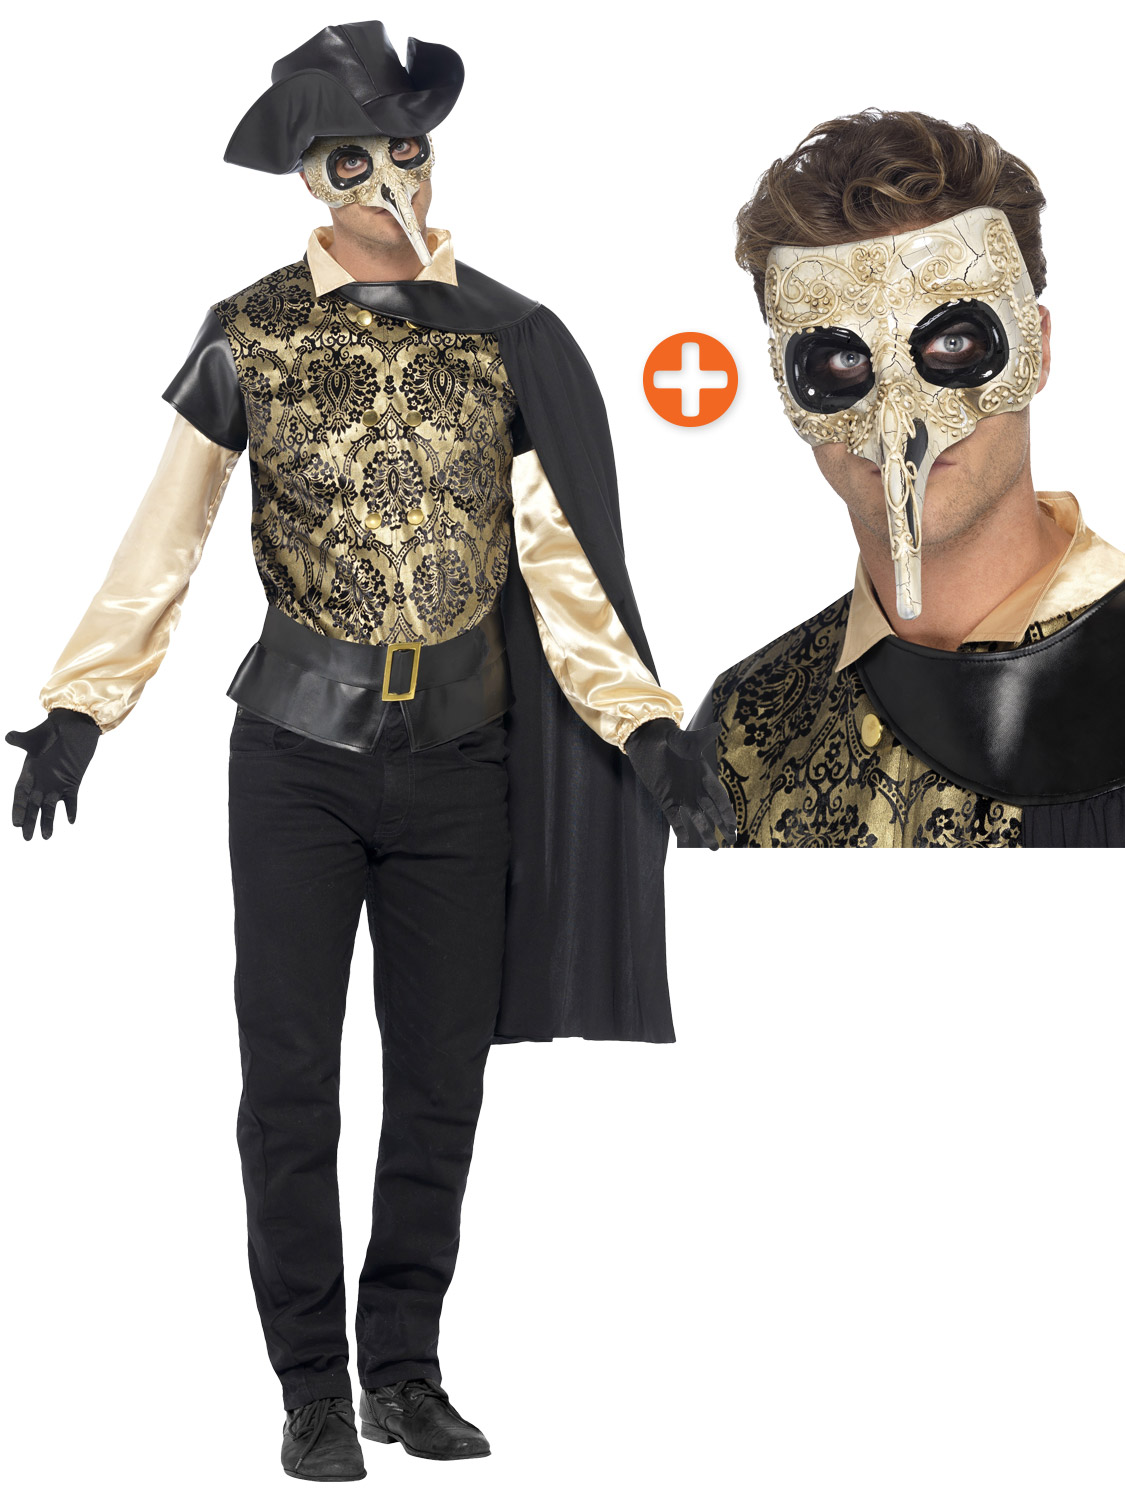 Masquerade Masks for Men. Stylish, dapper, elegant - here at Just Posh Masks we stock traditional Venetian masks to suit any palate. This selection of male masks includes designs with plenty of character, and more restrained masquerade masks in white or black that are perfect for pairing with a .